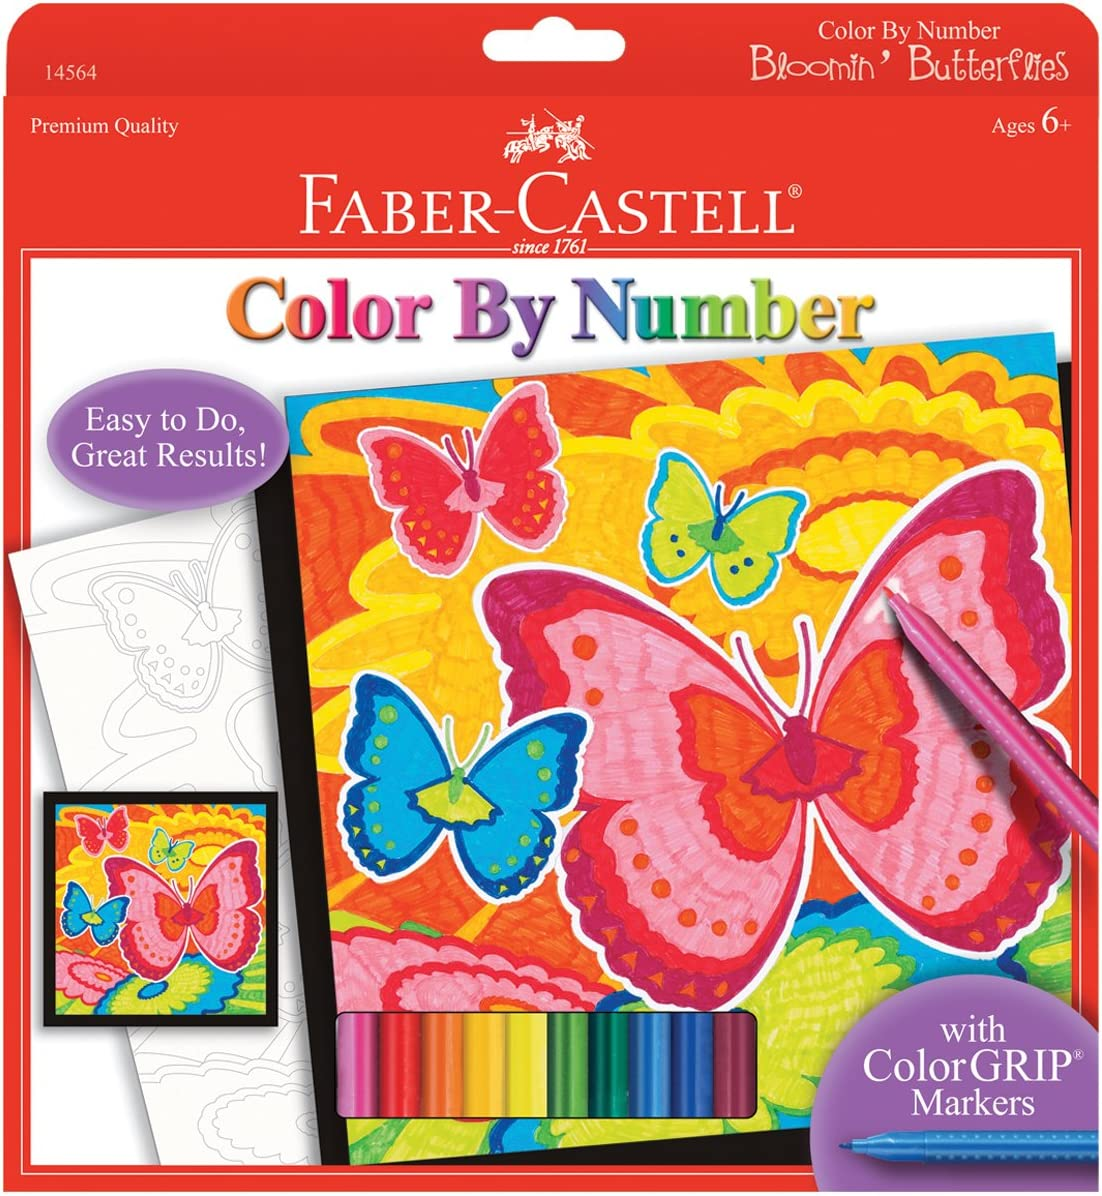 Online limited product Faber-Castell Color Very popular by Number Bloomin' Butterflies and - D